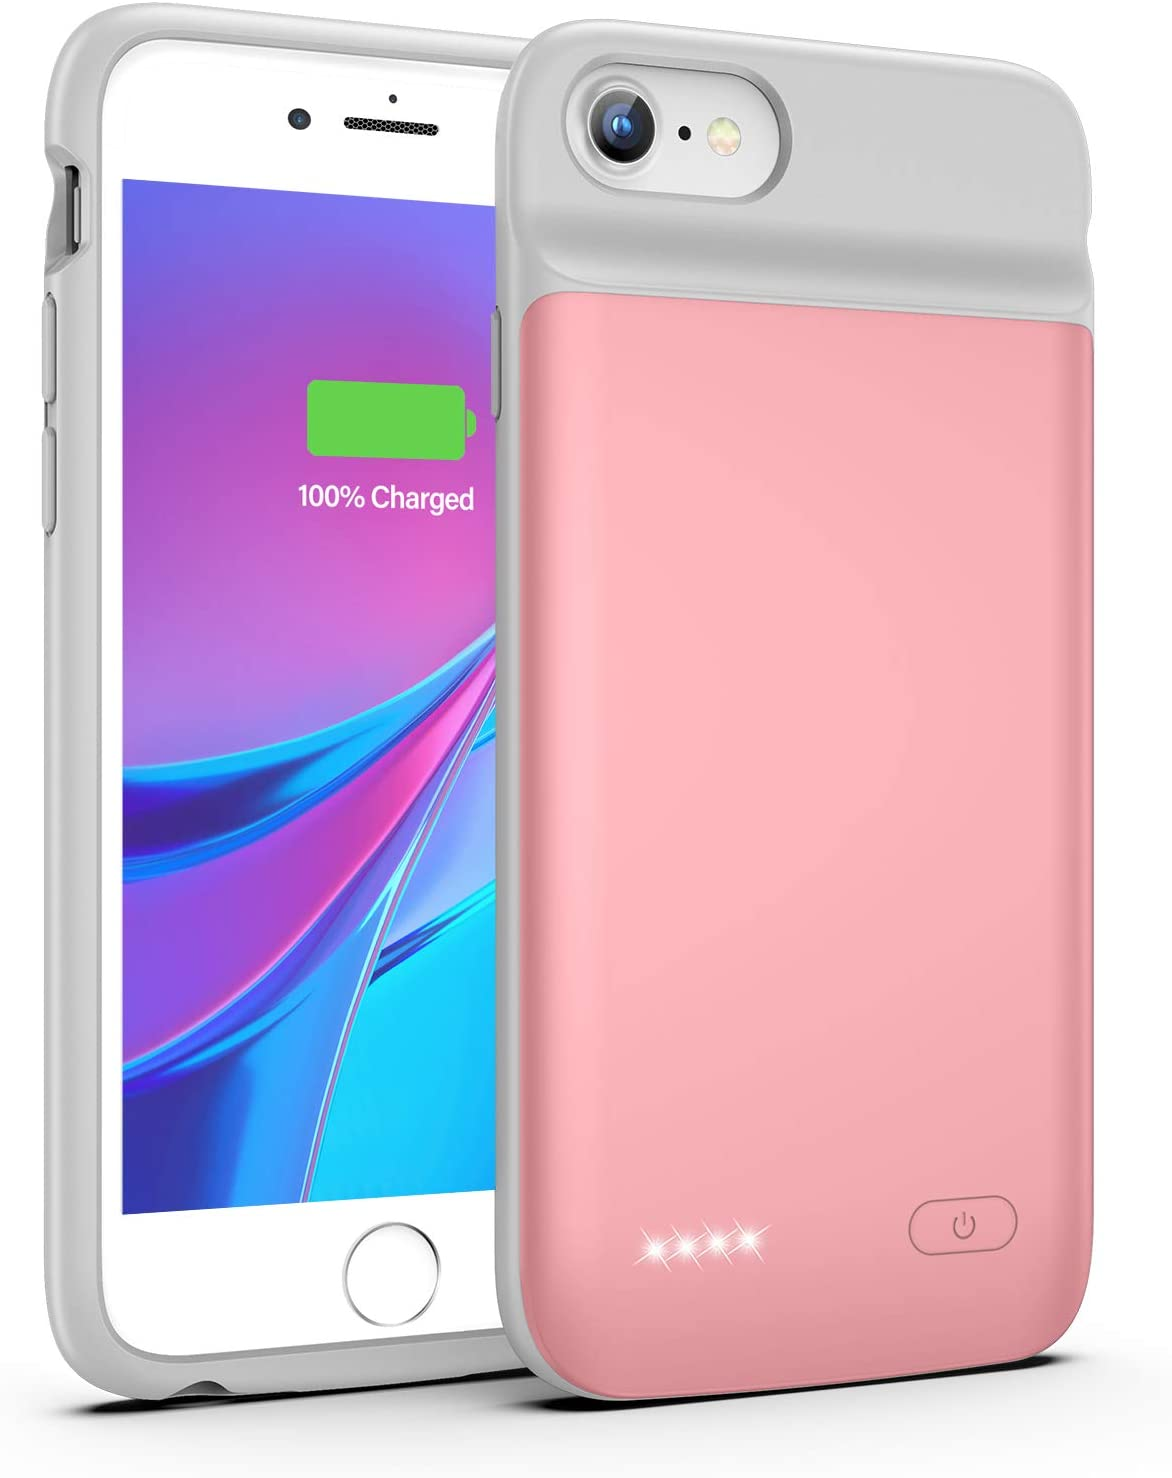 Battery Case for iPhone 8 7 6s 6 SE 2020(2nd Generation), 3200mAh Charging Case Portable Protective Charger Case for iPhone 8 7 6s 6 SE 2020(2nd Generation) (4.7inch)(Rose Gold)